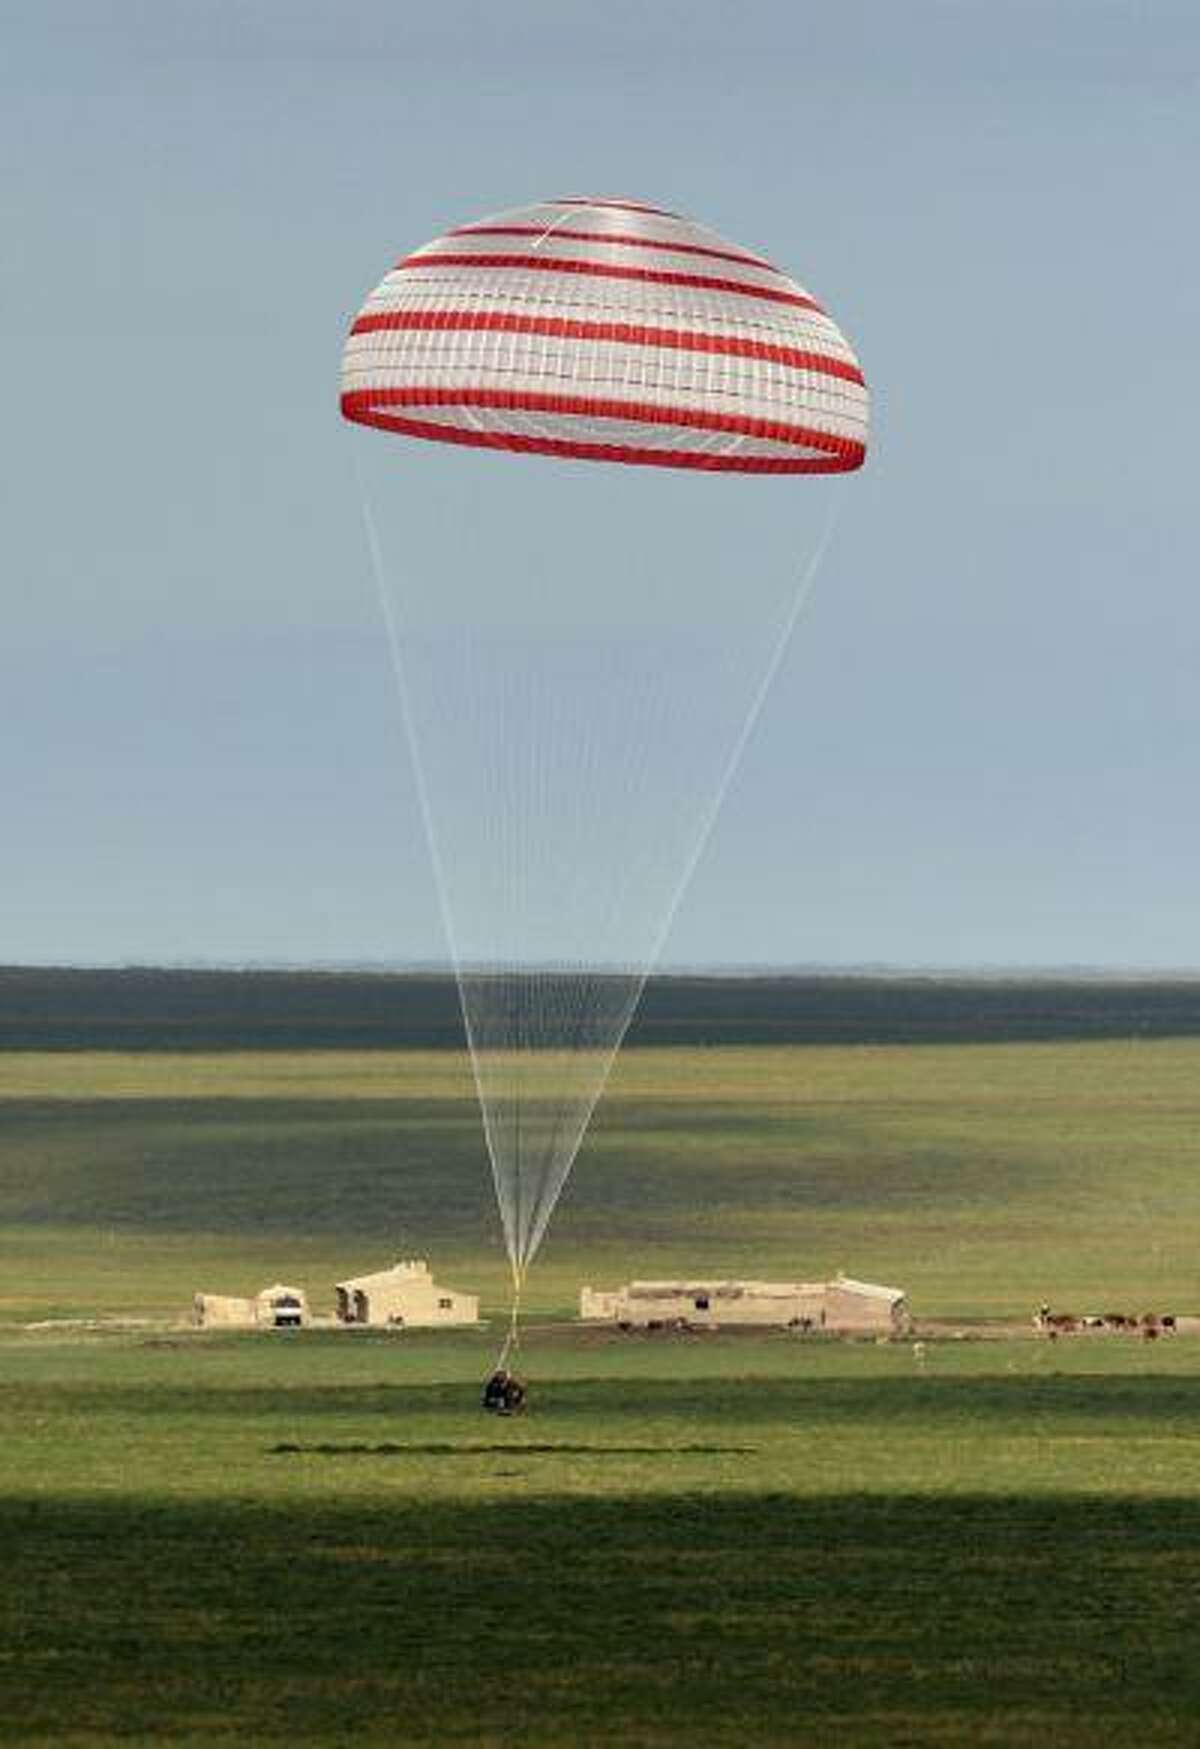 The re-entry capsule of China's Shenzhou-10 spacecraft lands at its main landing site in north China's Inner Mongolia Autonomous Region, June 26, 2013.